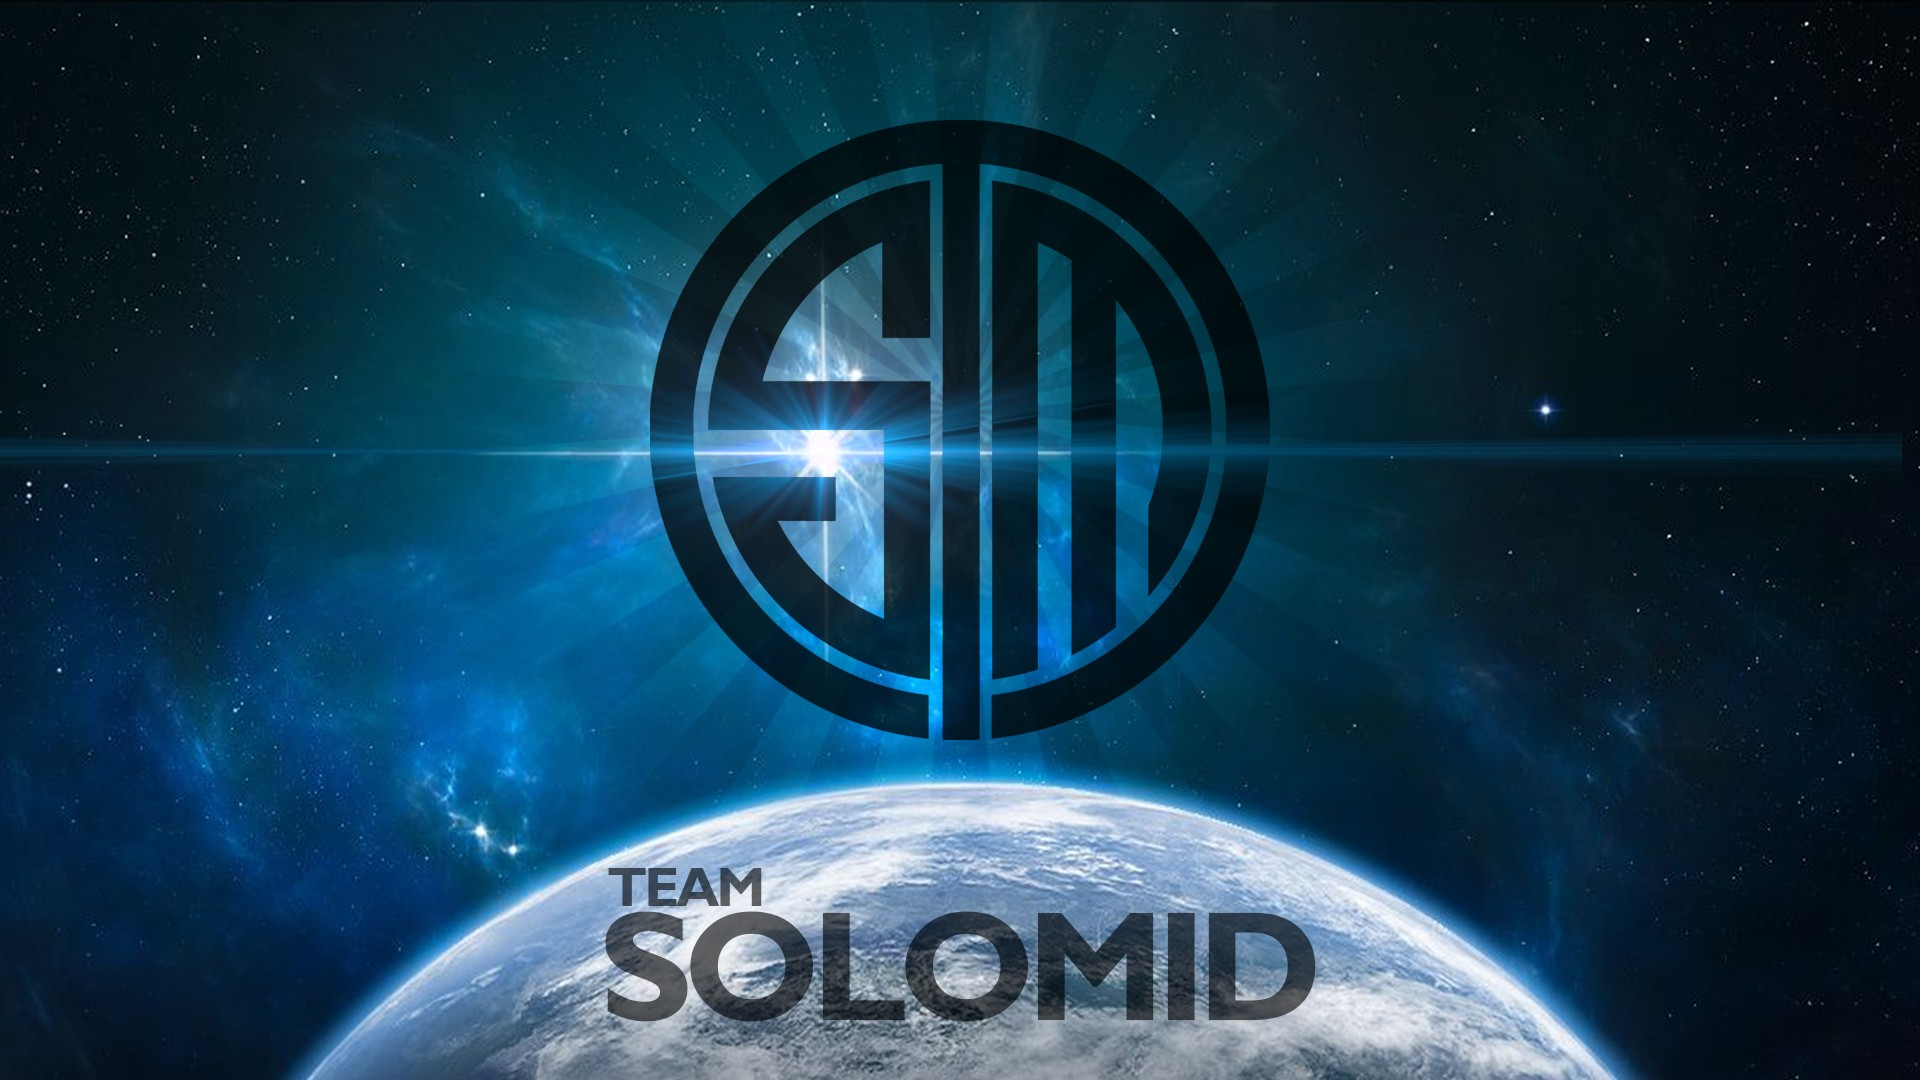 Team Solomid League Of Legends Esports Wallpapers HD Desktop And Mobile Backgrounds